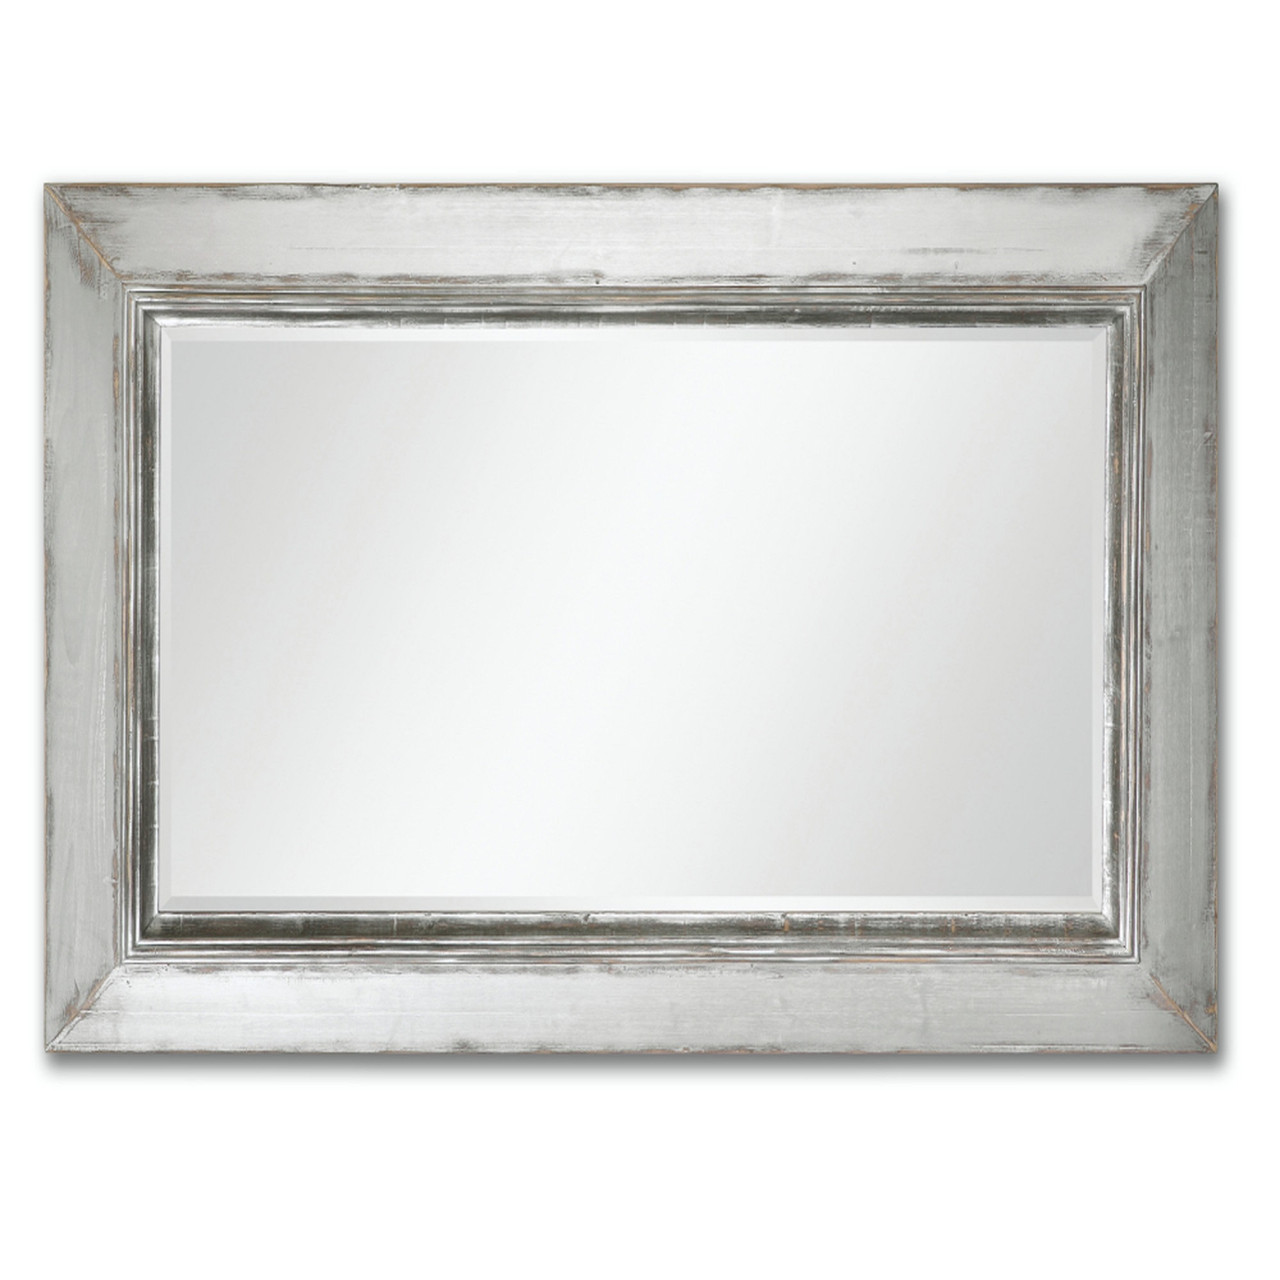 735 oversized beveled rectangular wall mirror with distressed 735 oversized beveled rectangular wall mirror with distressed aged silver frame 31334205 amipublicfo Gallery